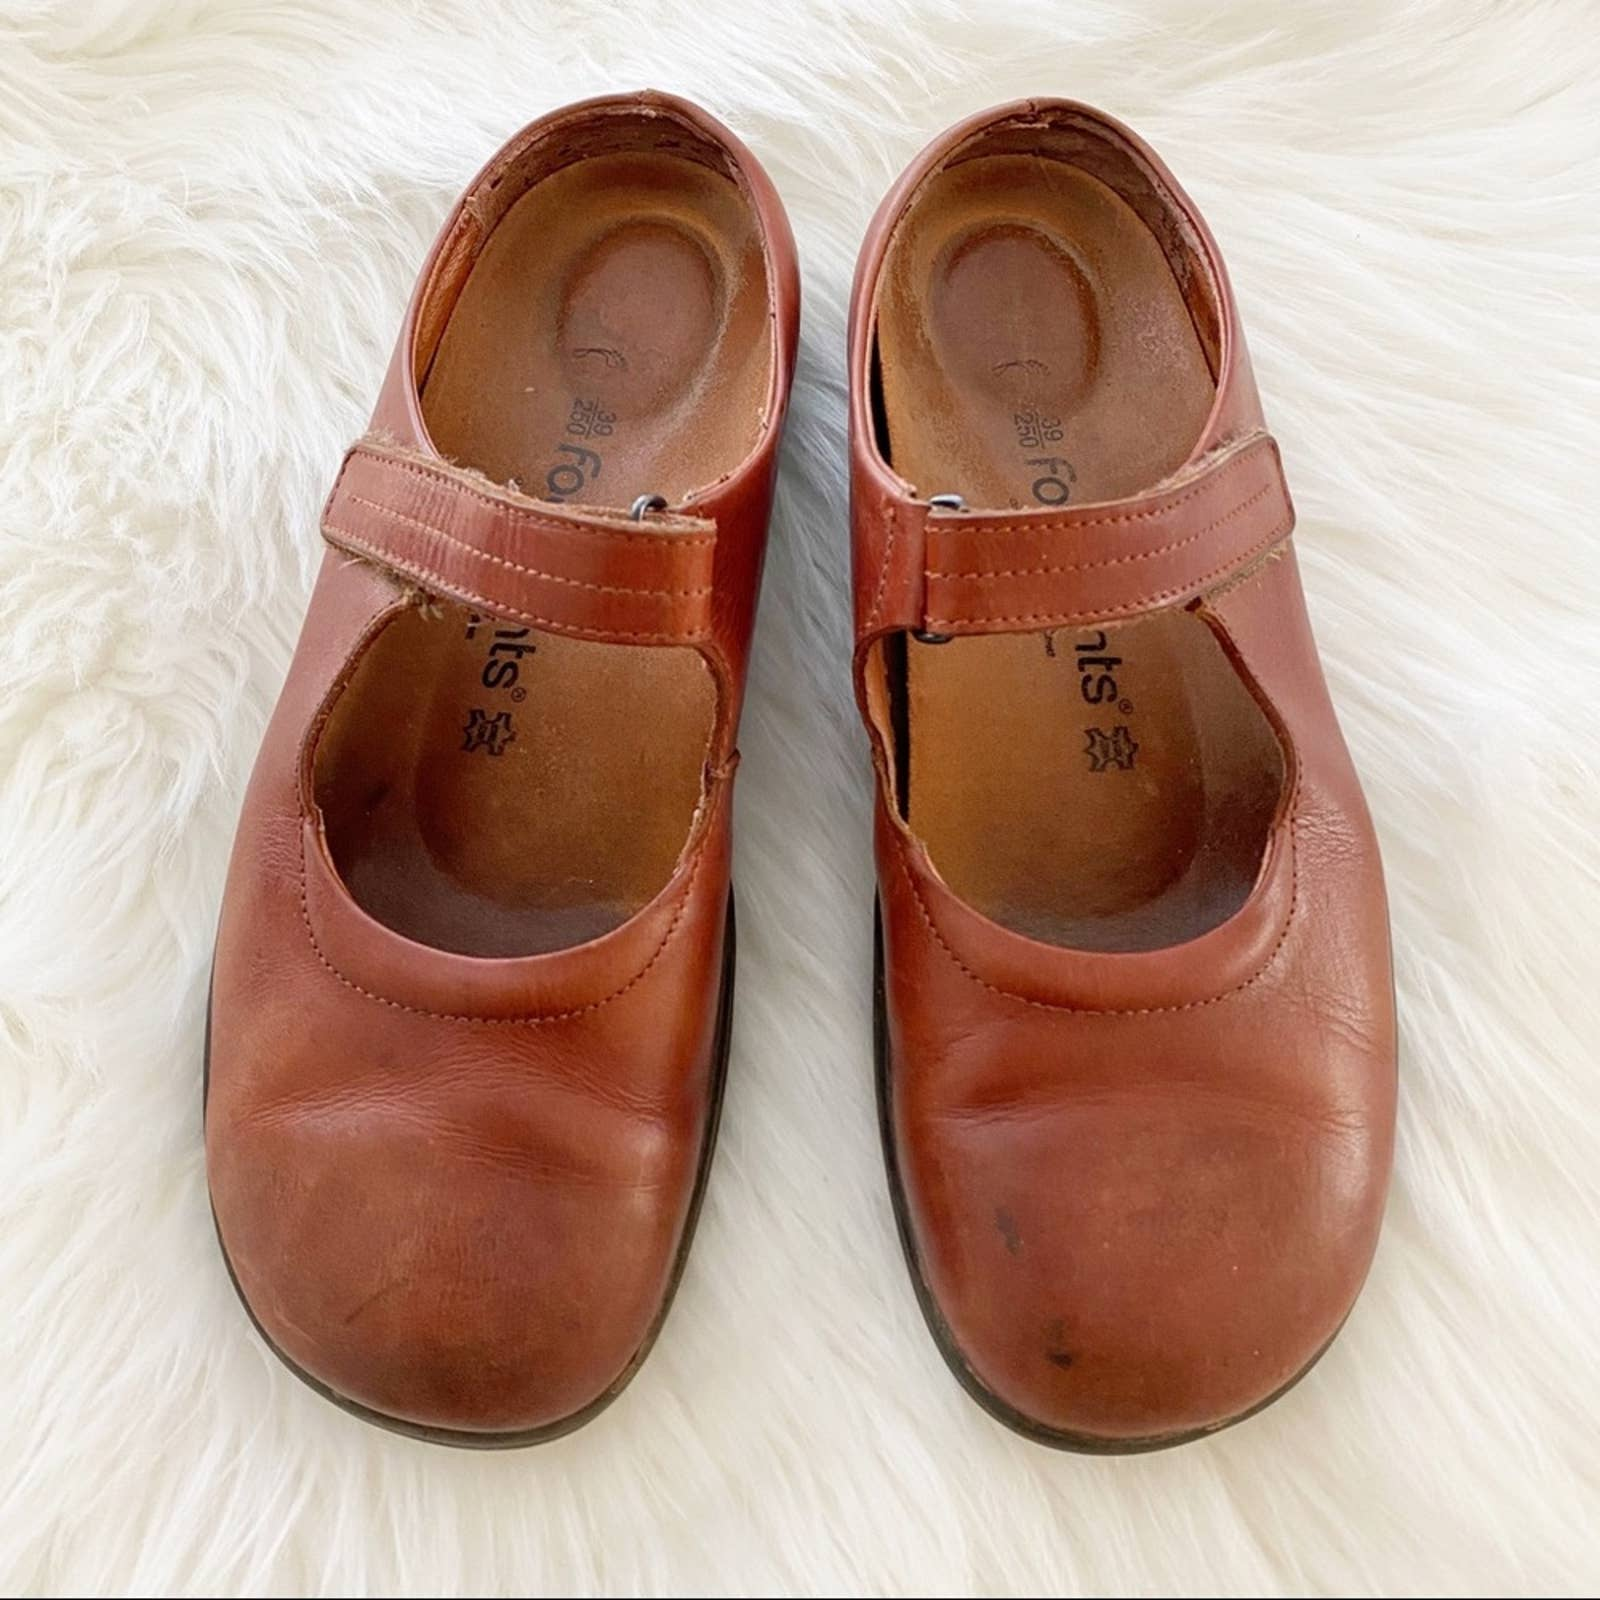 Product Image 1 - Footprints by Birkenstock Leather Mary